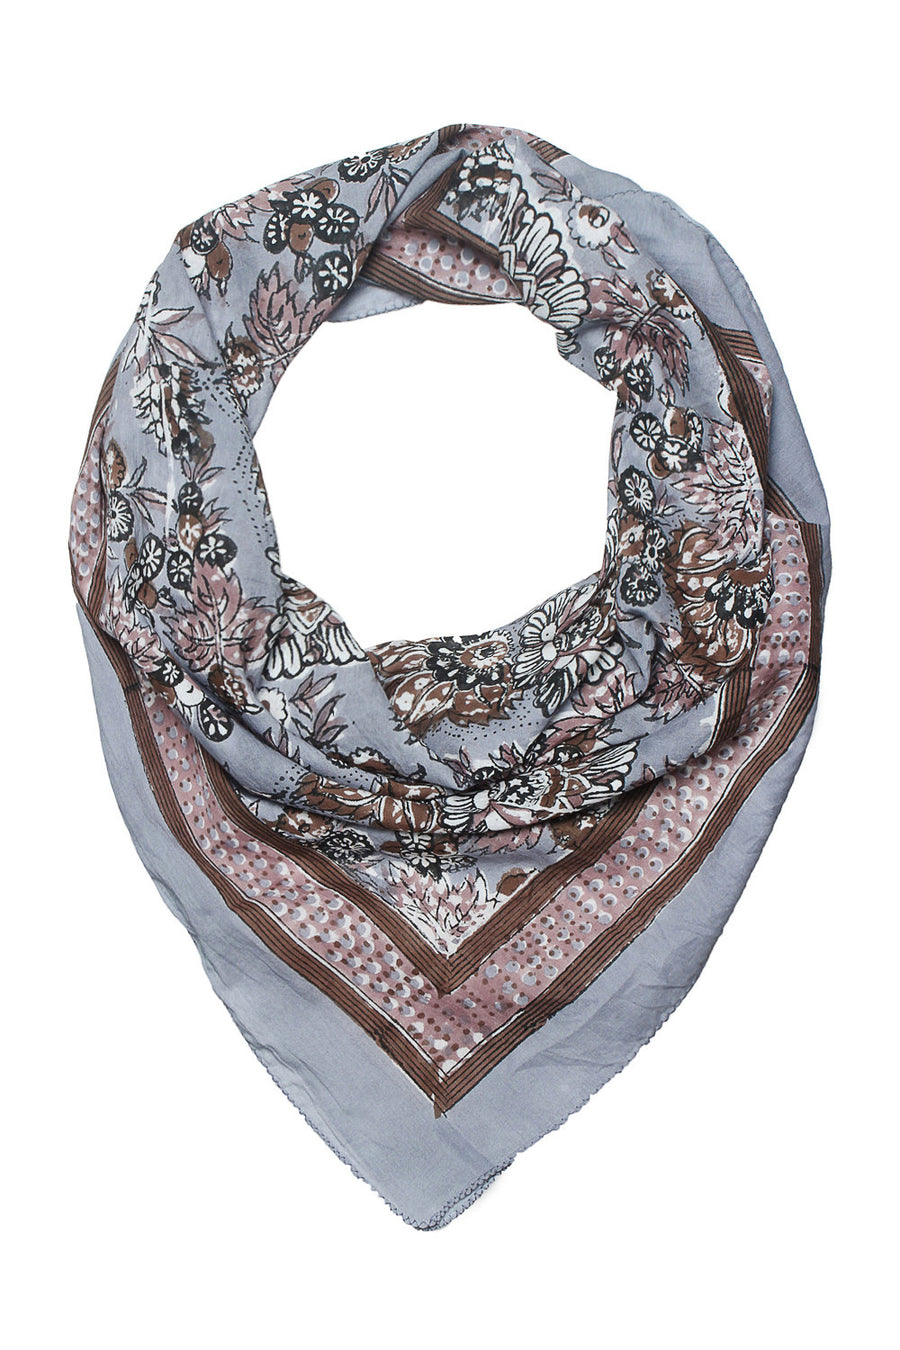 Soft cotton hand block printed scarf in grey color